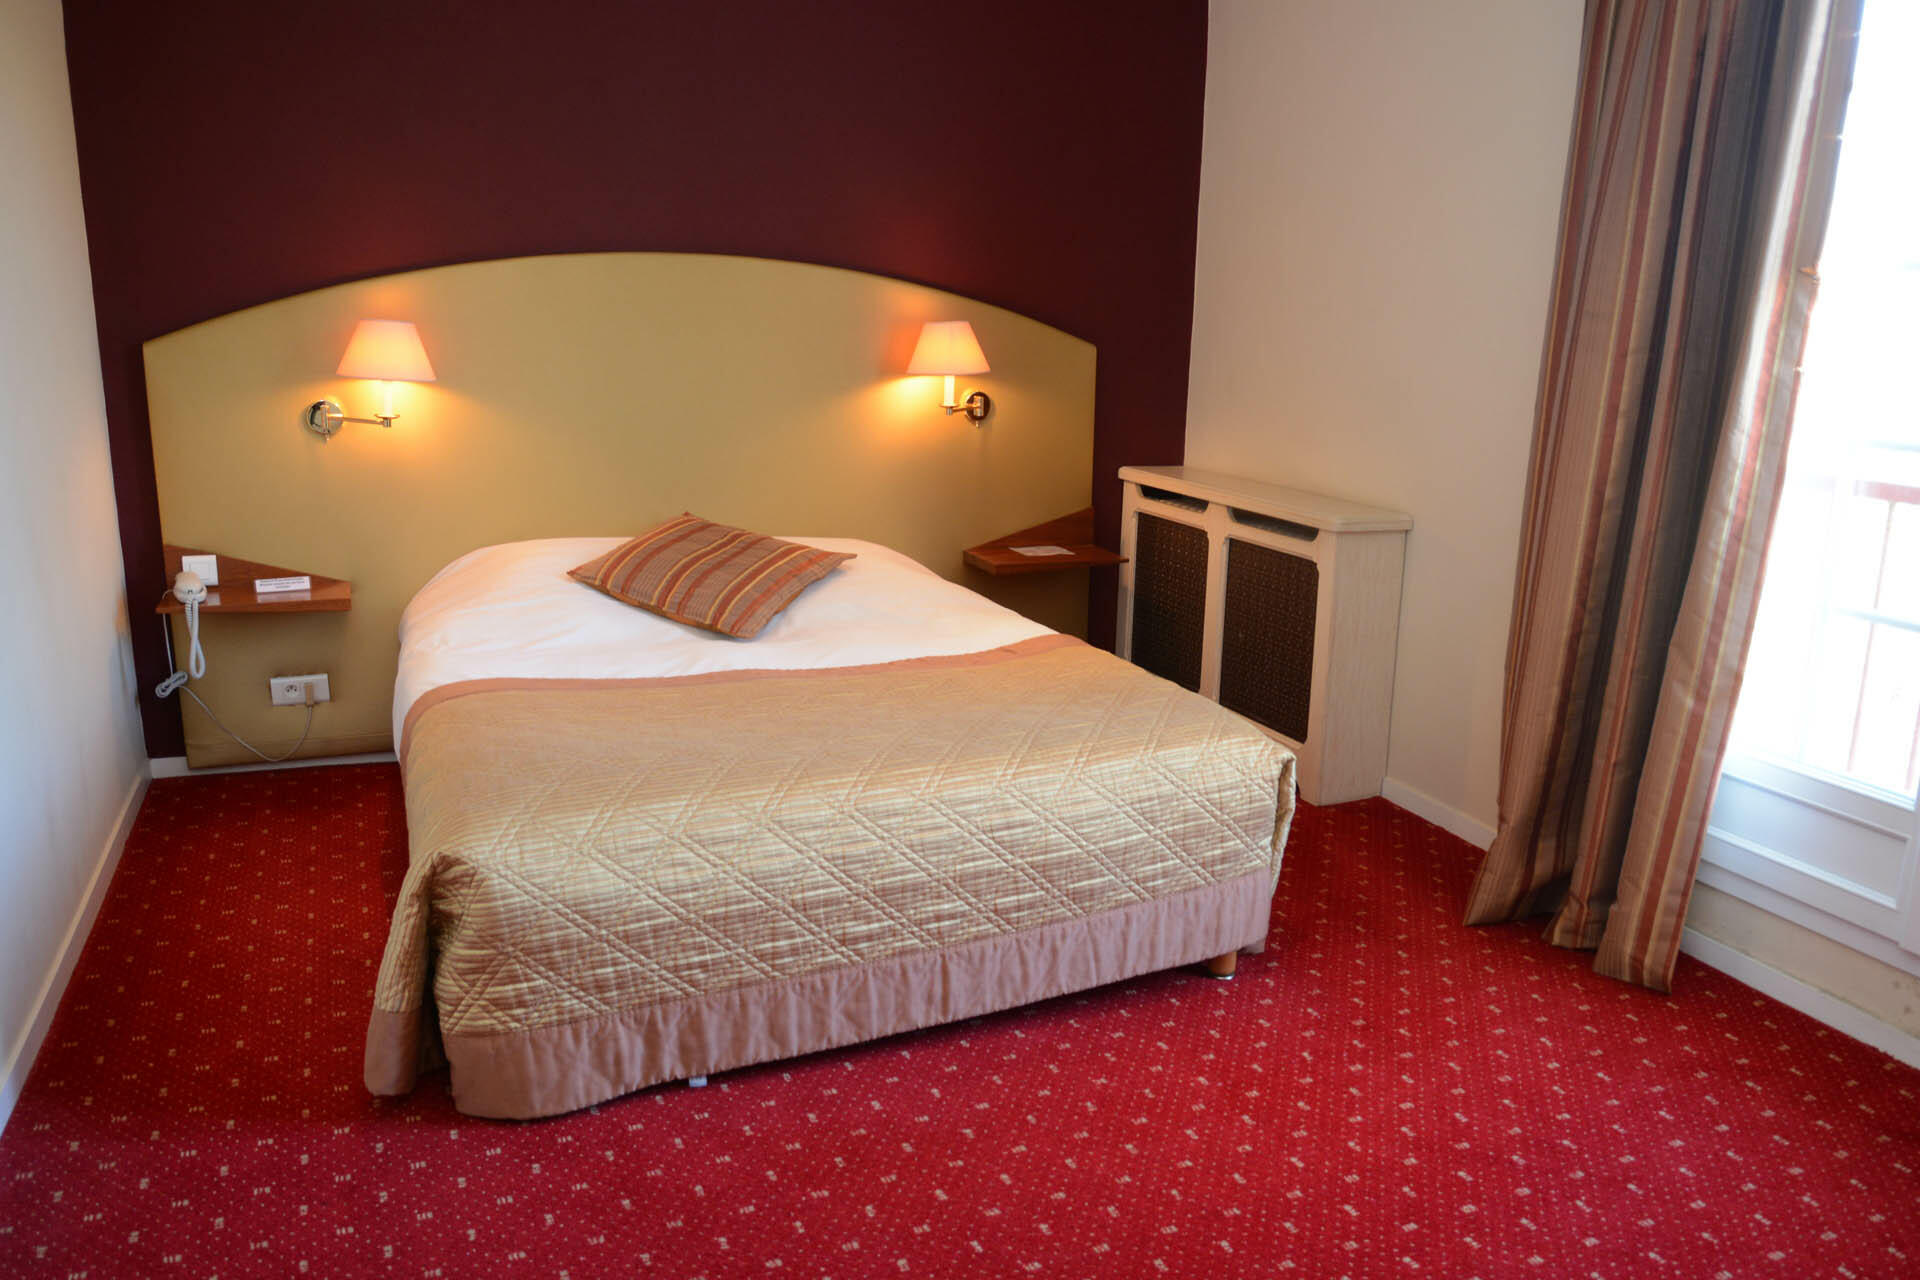 Room at Hôtel Le Continental in Forges-les-Eaux